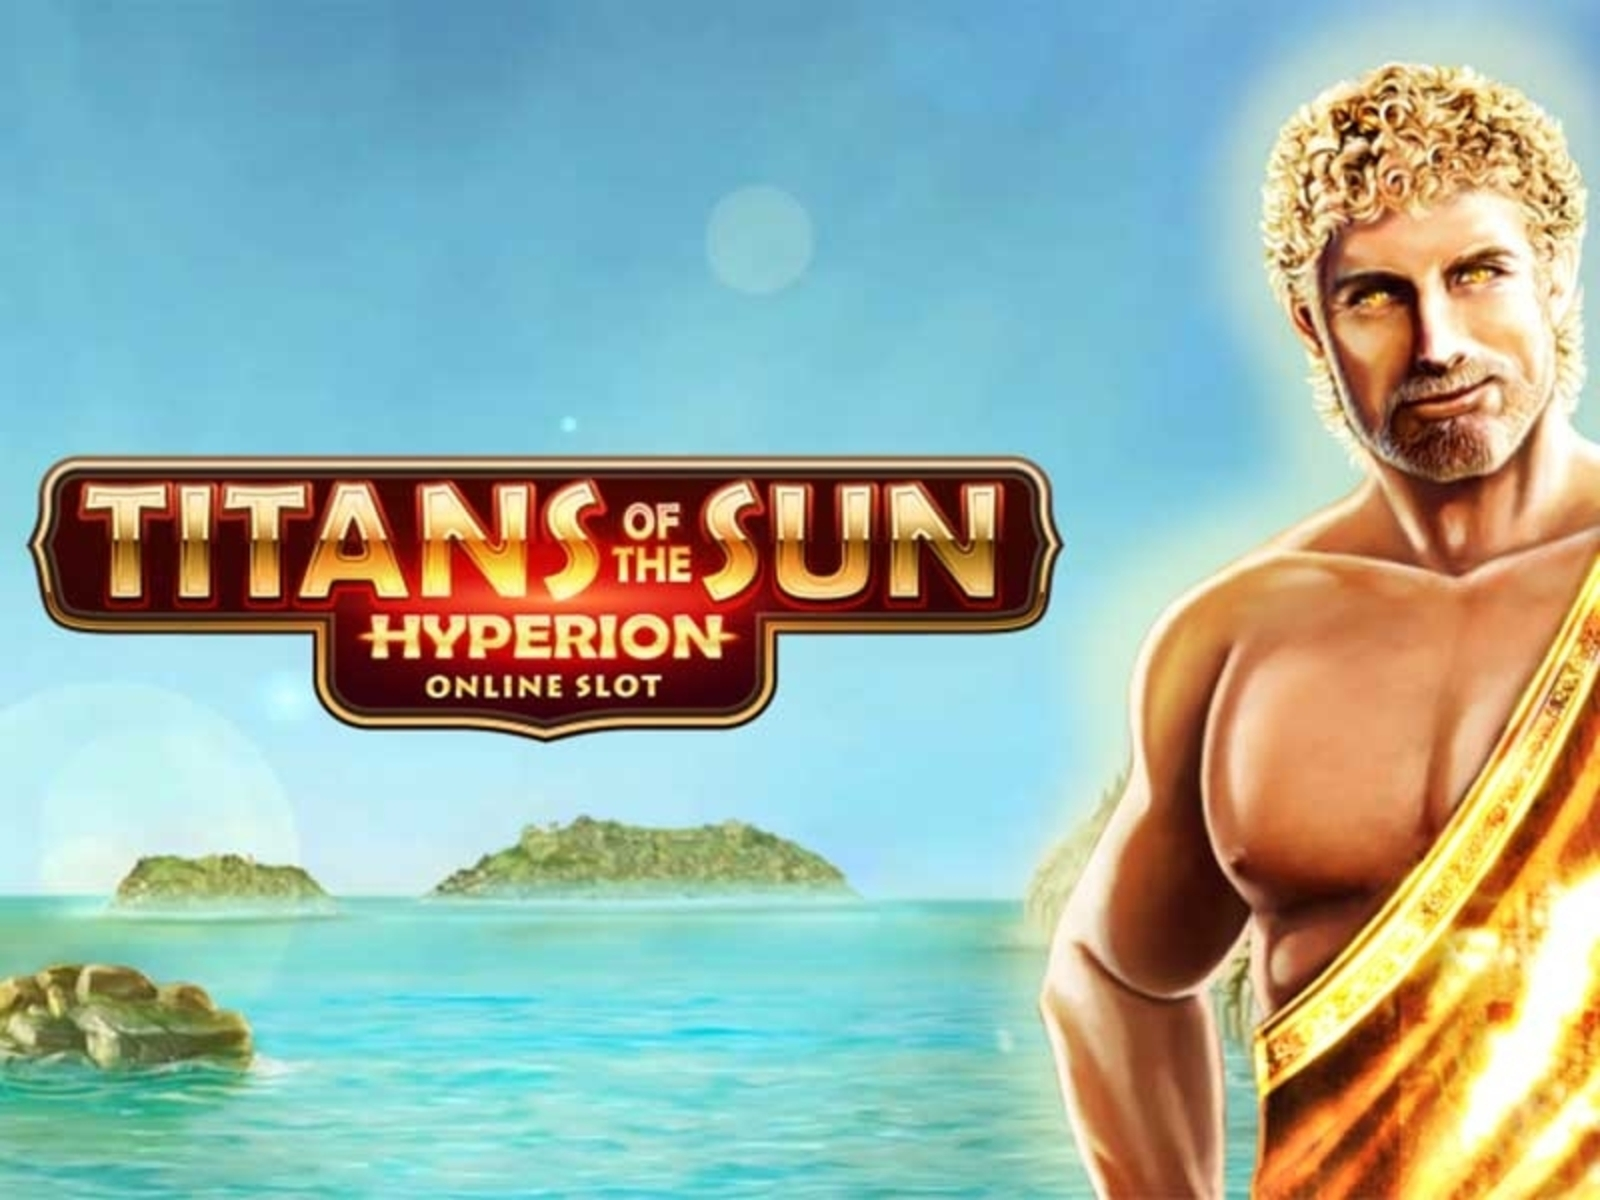 The Titans of the Sun Hyperion Online Slot Demo Game by Microgaming